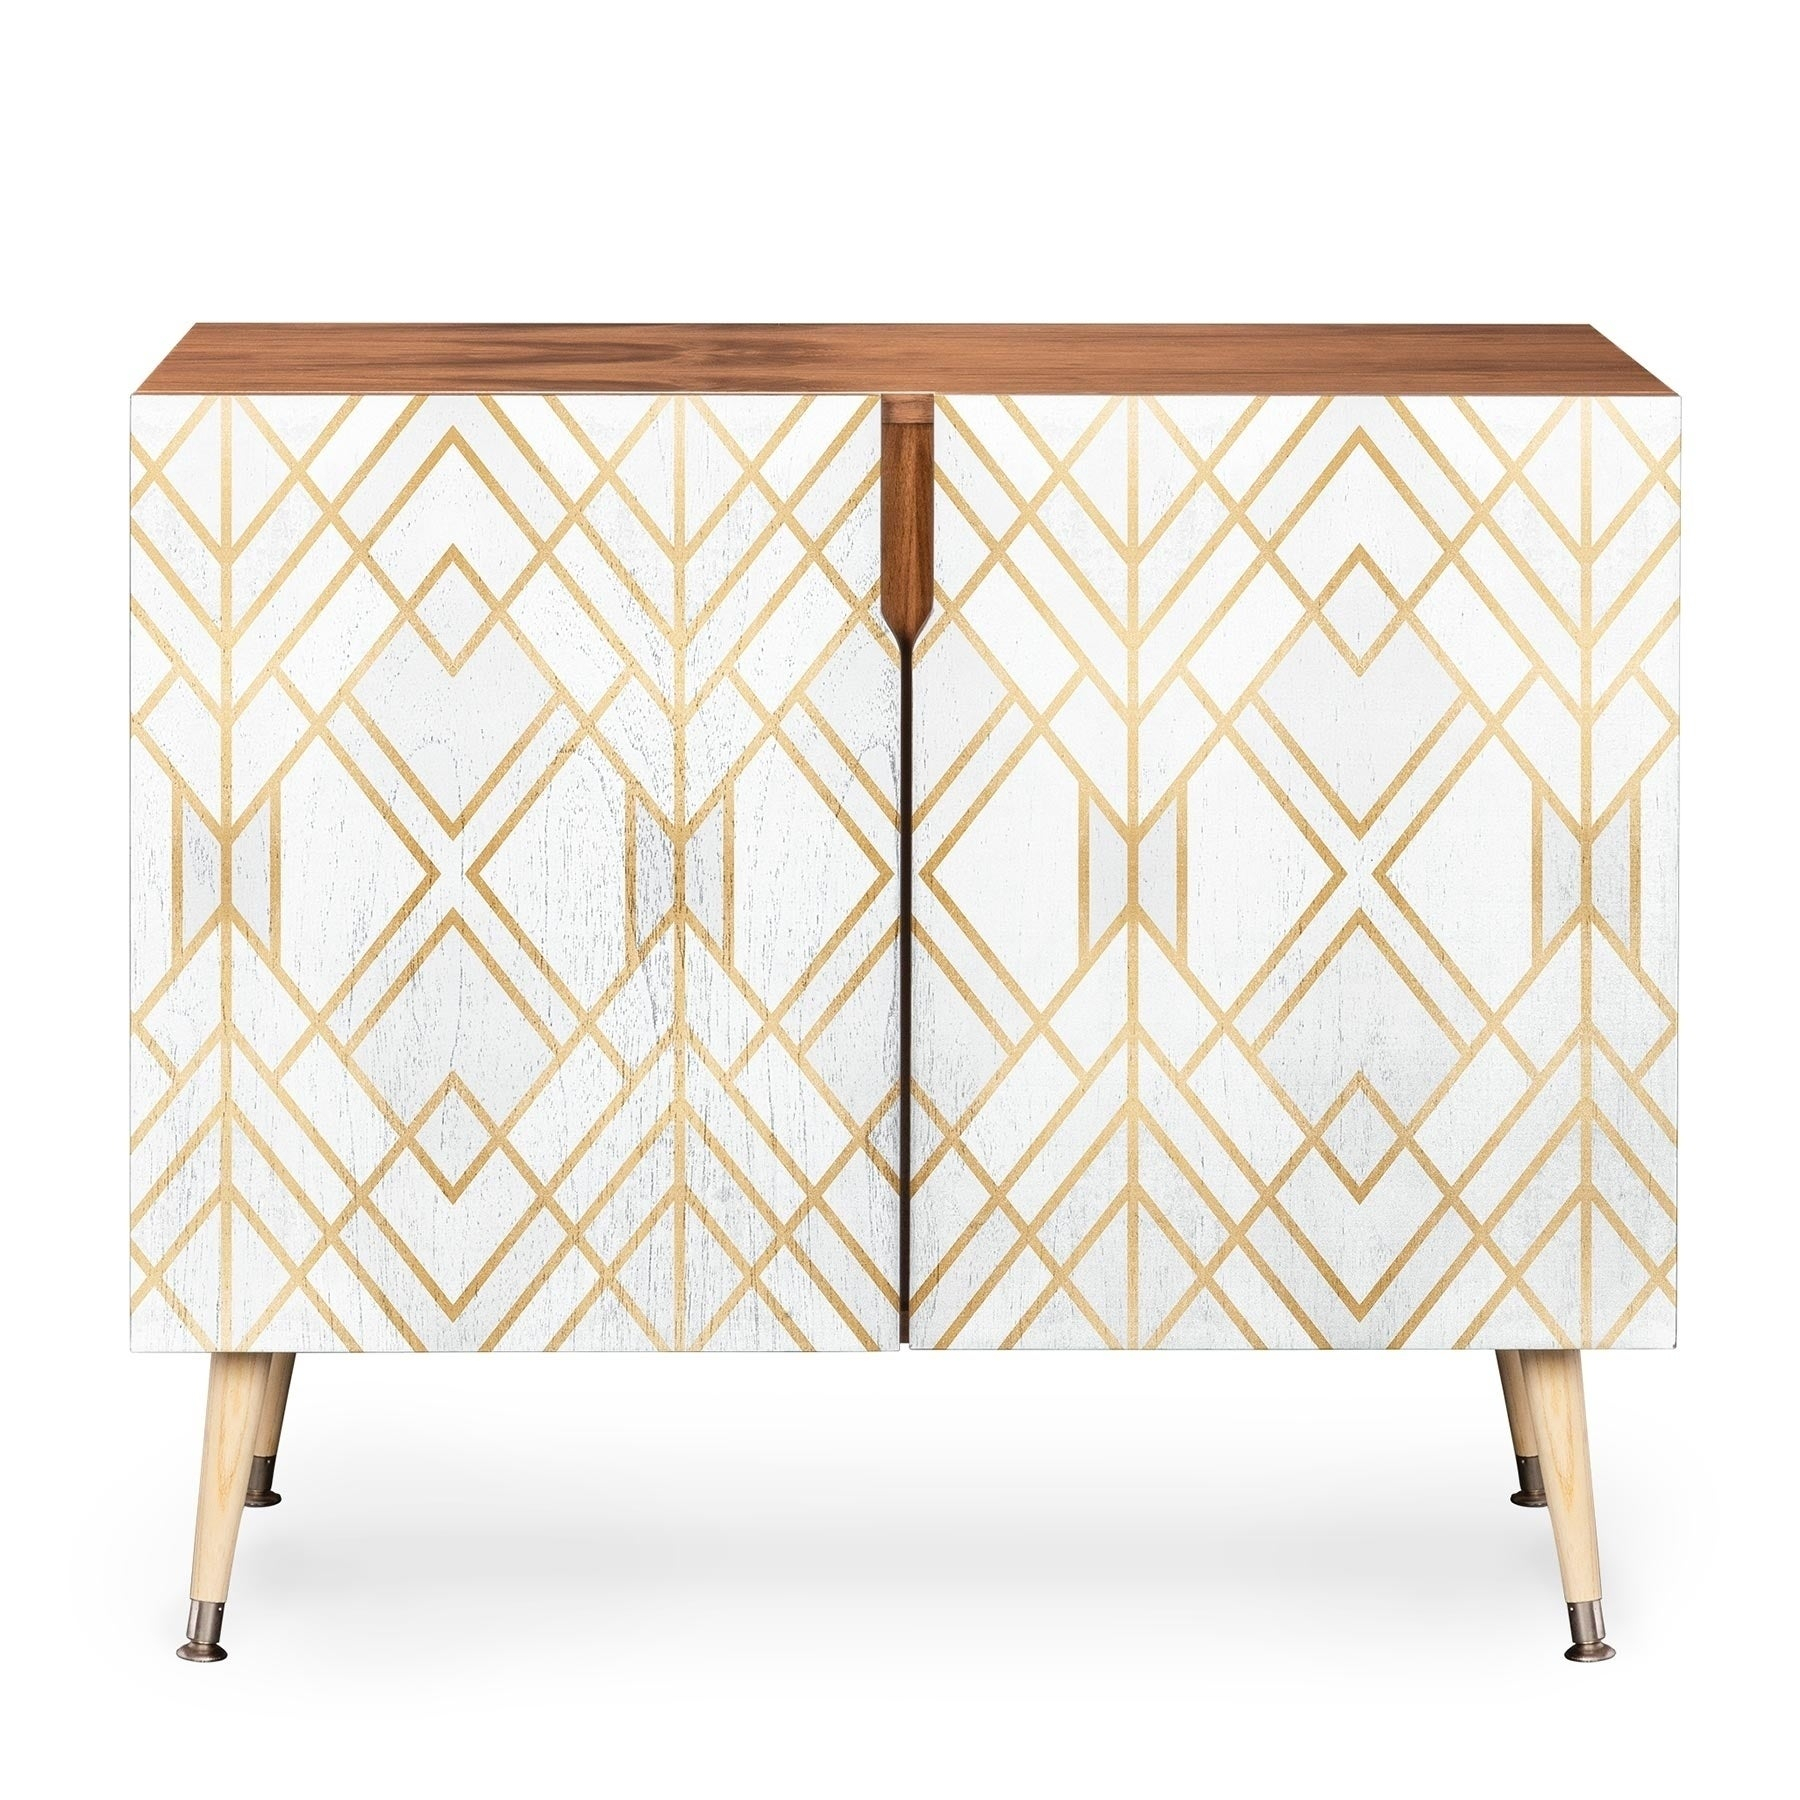 Deny Designs White Geometric Credenza (Birch Or Walnut, 3 Leg Options) Pertaining To Copper Leaf Wood Credenzas (Gallery 7 of 30)